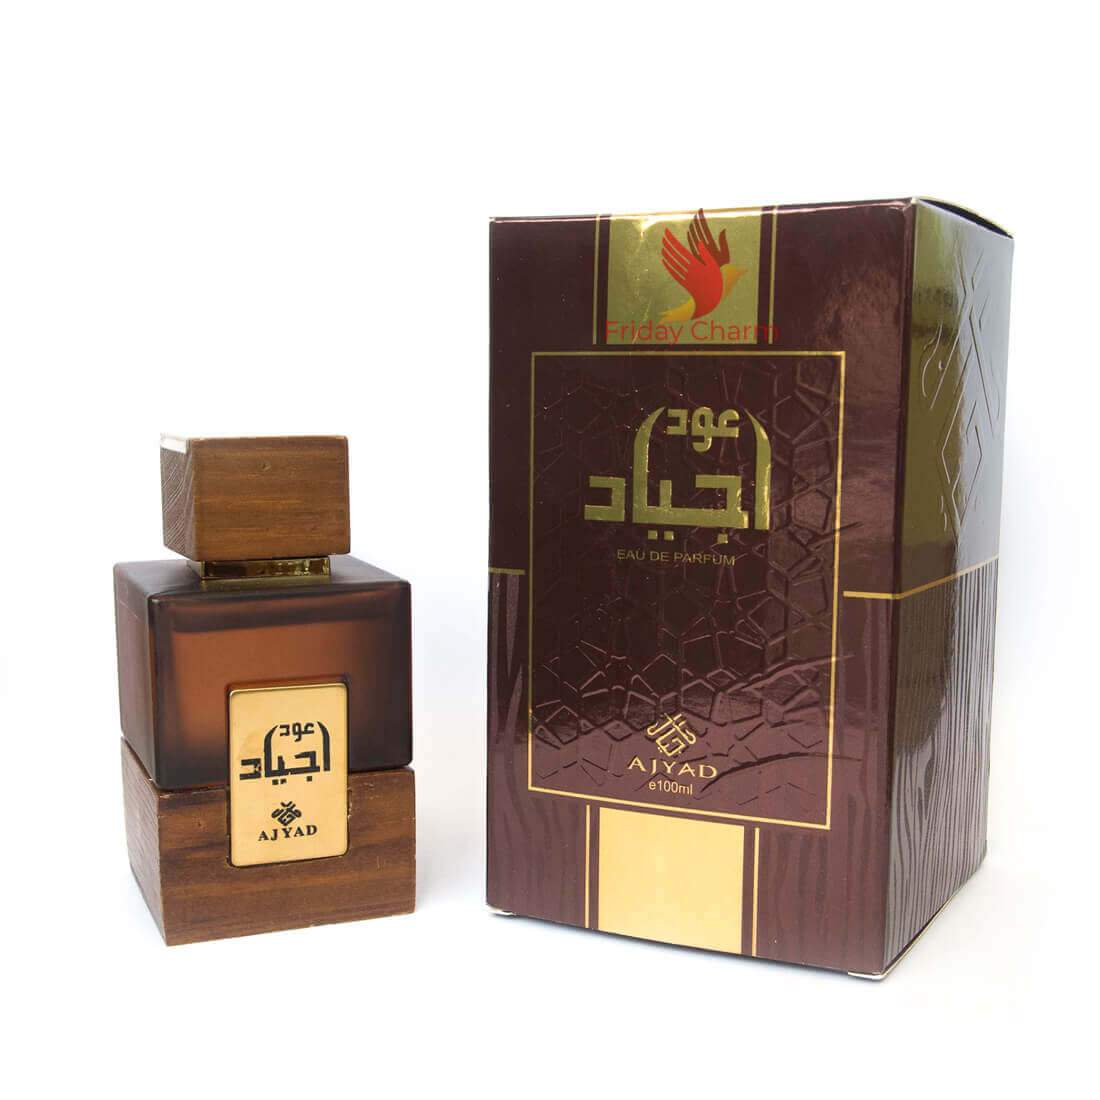 Oud Ajyad spray